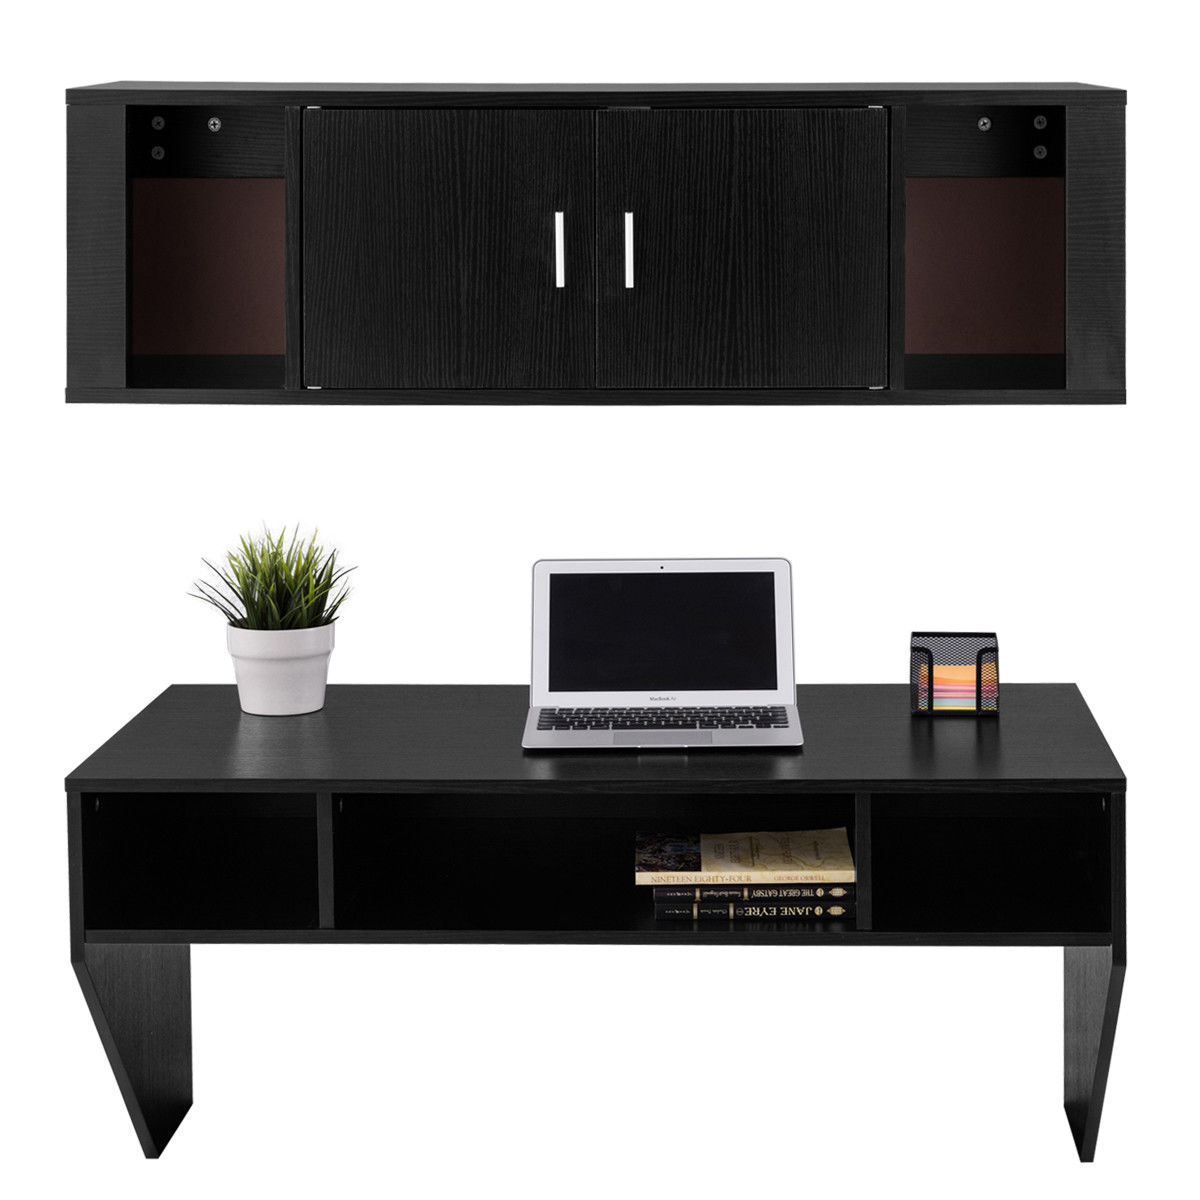 Good Giantex Home Office Furniture Set Wall Mounted Floating Storage Cabinet +  Computer Table Desk Modern Storage Shelves HW56624 In Living Room Cabinets  From ...